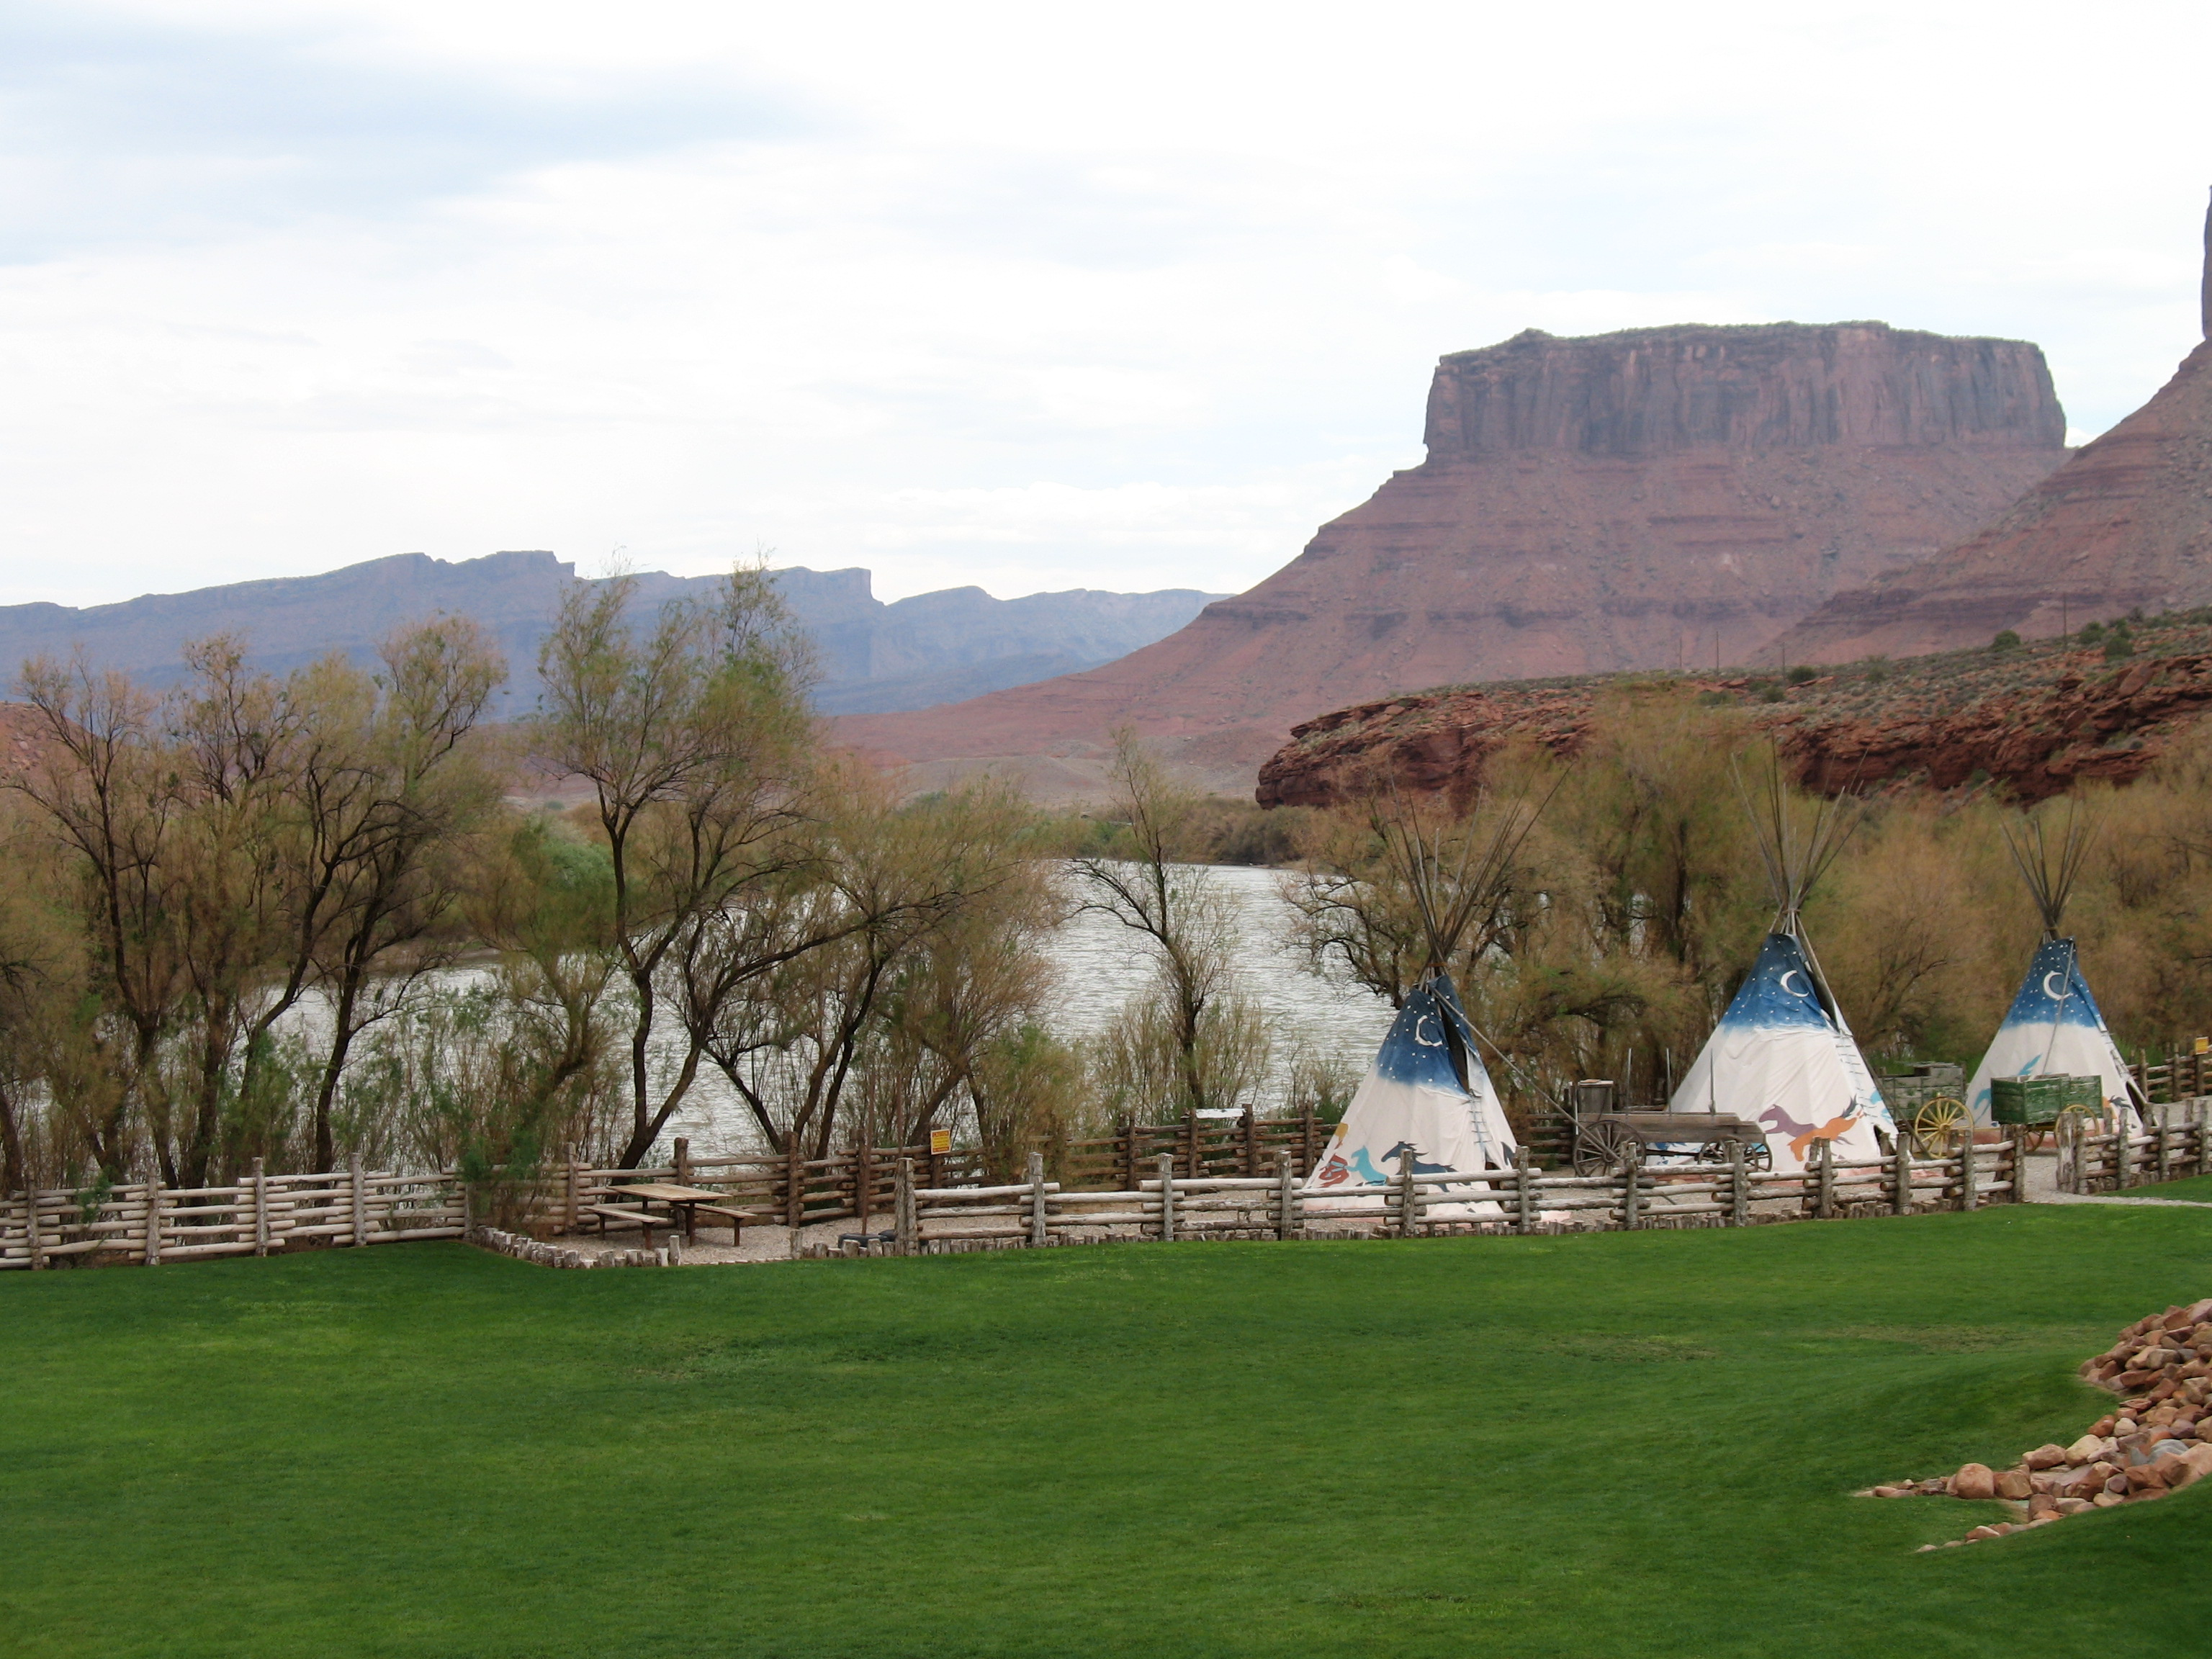 red cliffs dating site Now $200 (was $̶2̶7̶0̶) on tripadvisor: red cliffs lodge, moab see 2,782 traveler reviews, 2,763 candid photos, and great deals for red cliffs lodge, ranked #1 of 38 hotels in moab and rated 45 of 5 at tripadvisor.